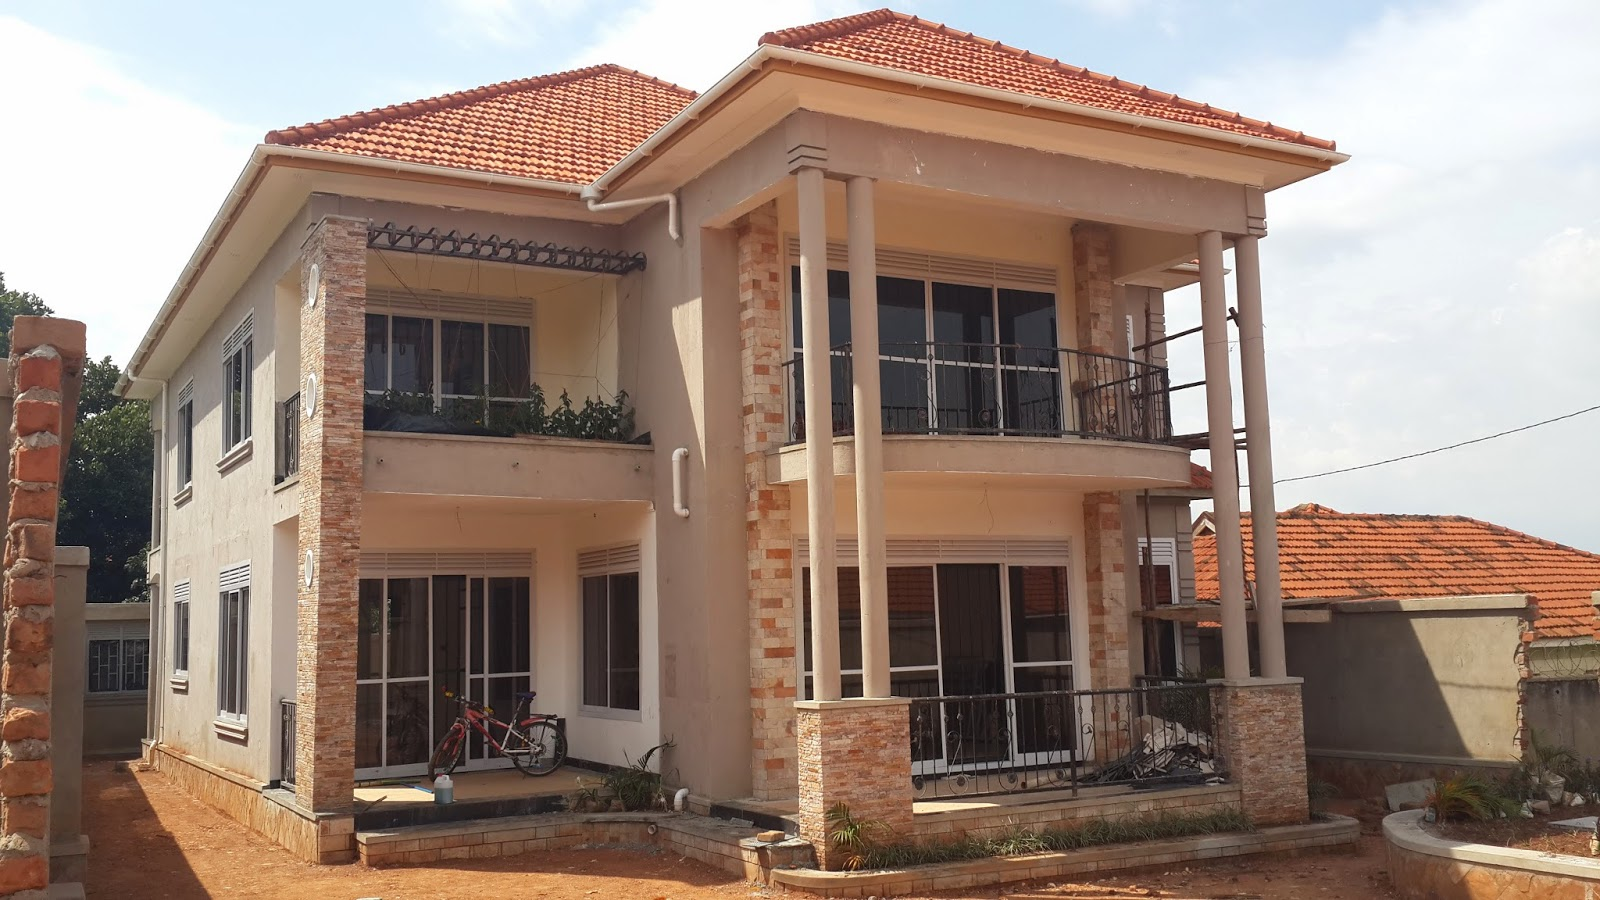 Naalya kampala uganda house for sale asking price ugx 650m 4 bedroom 4 5 bathrooms scheduled to be completed end september